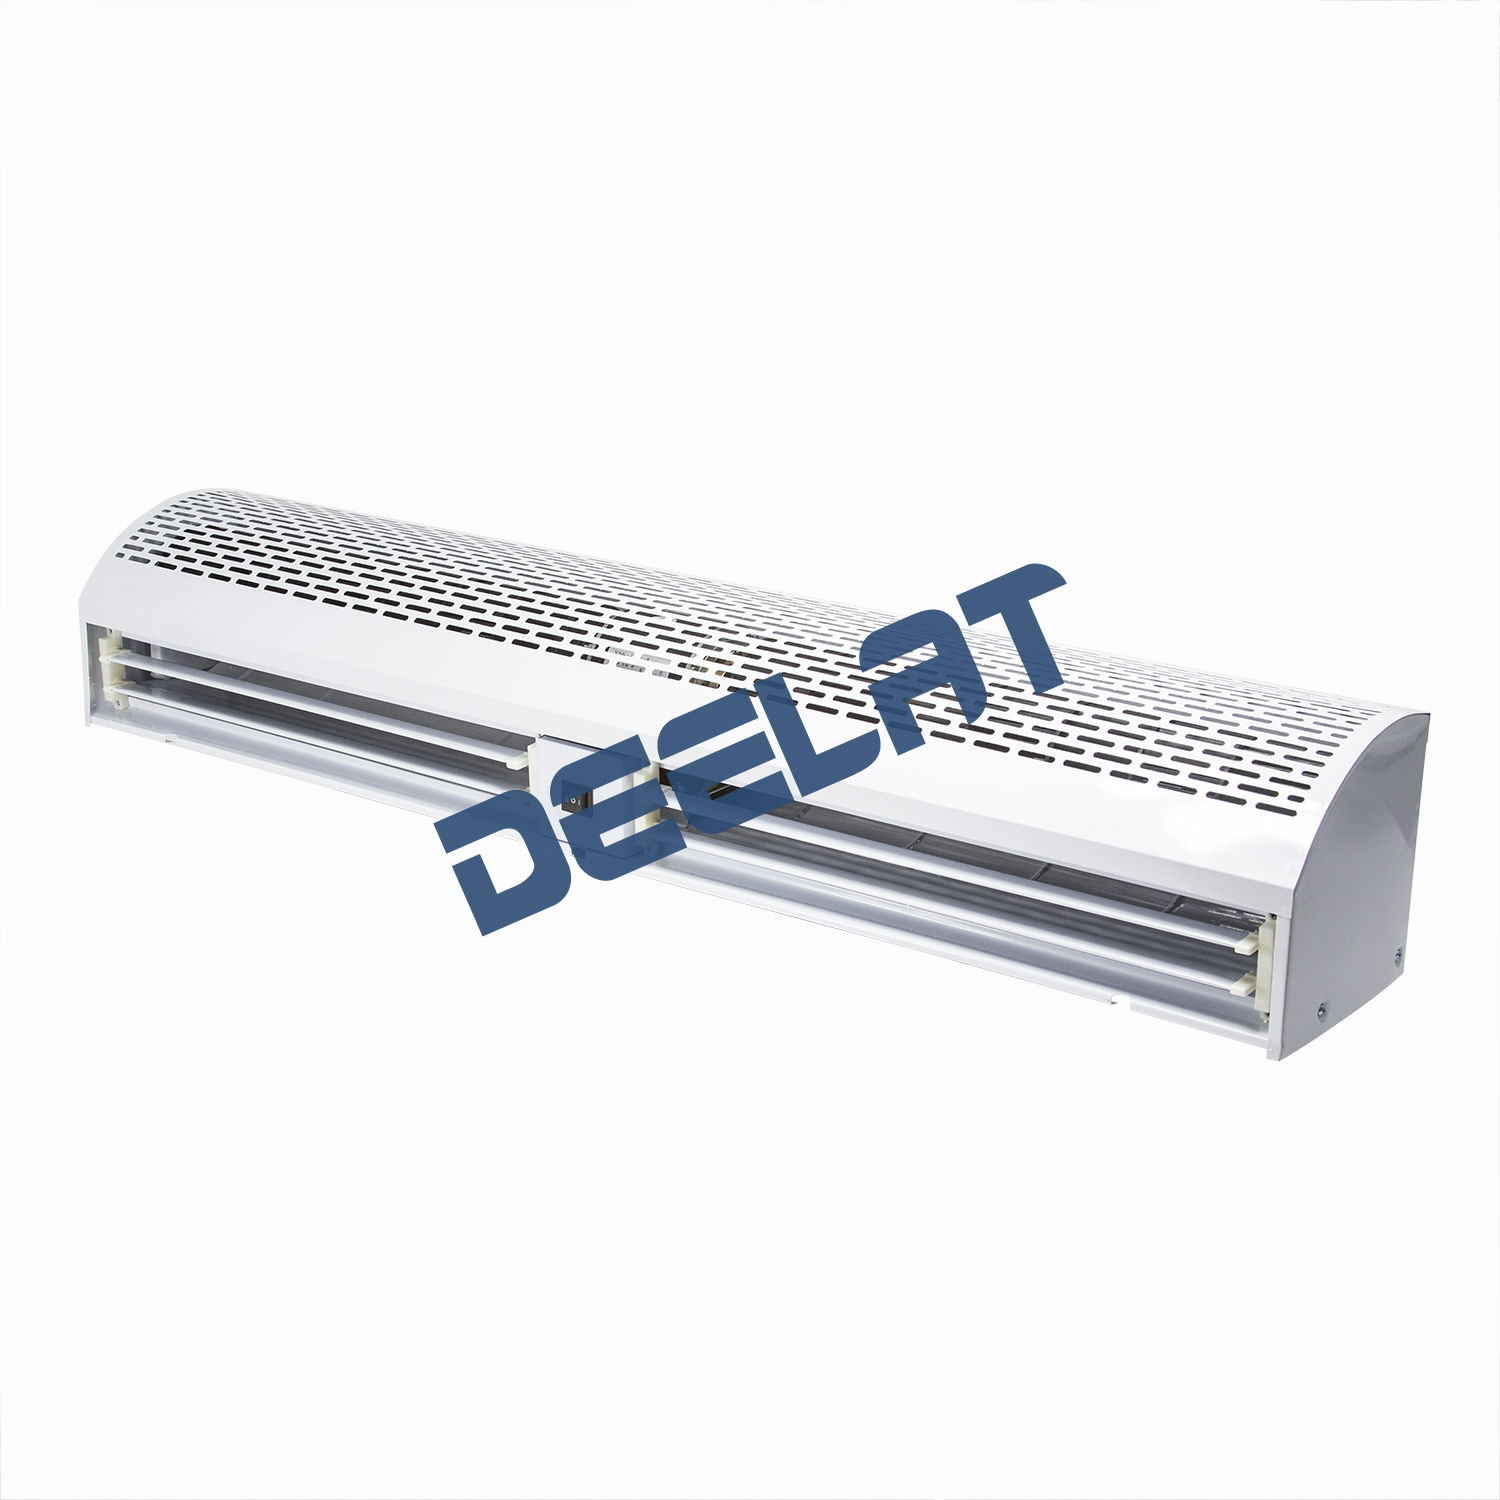 DEELAT ® Air Curtains